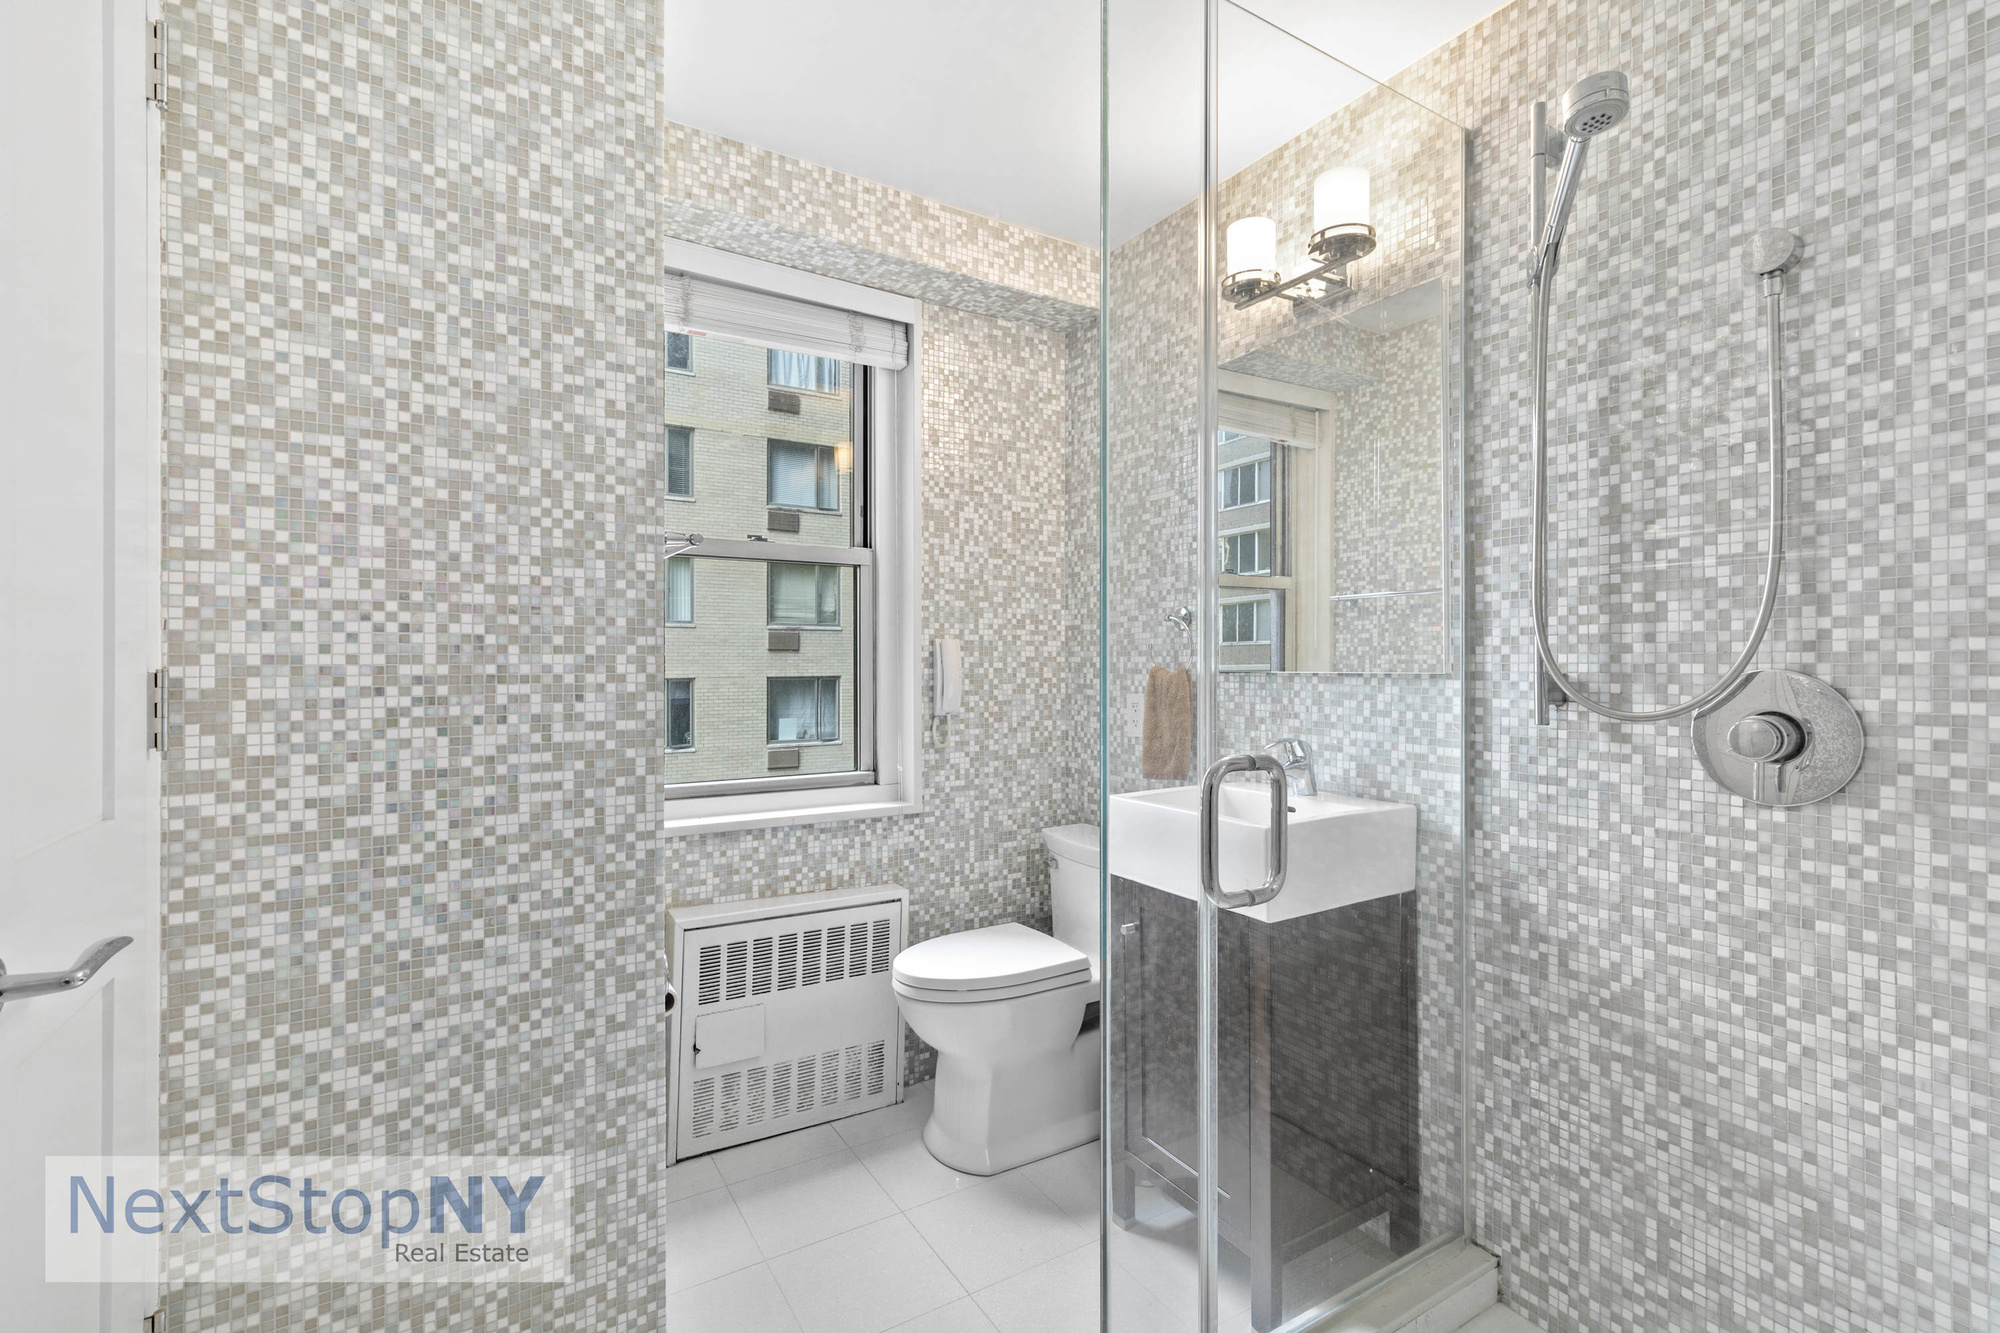 400 East 54th Street Sutton Place New York NY 10022